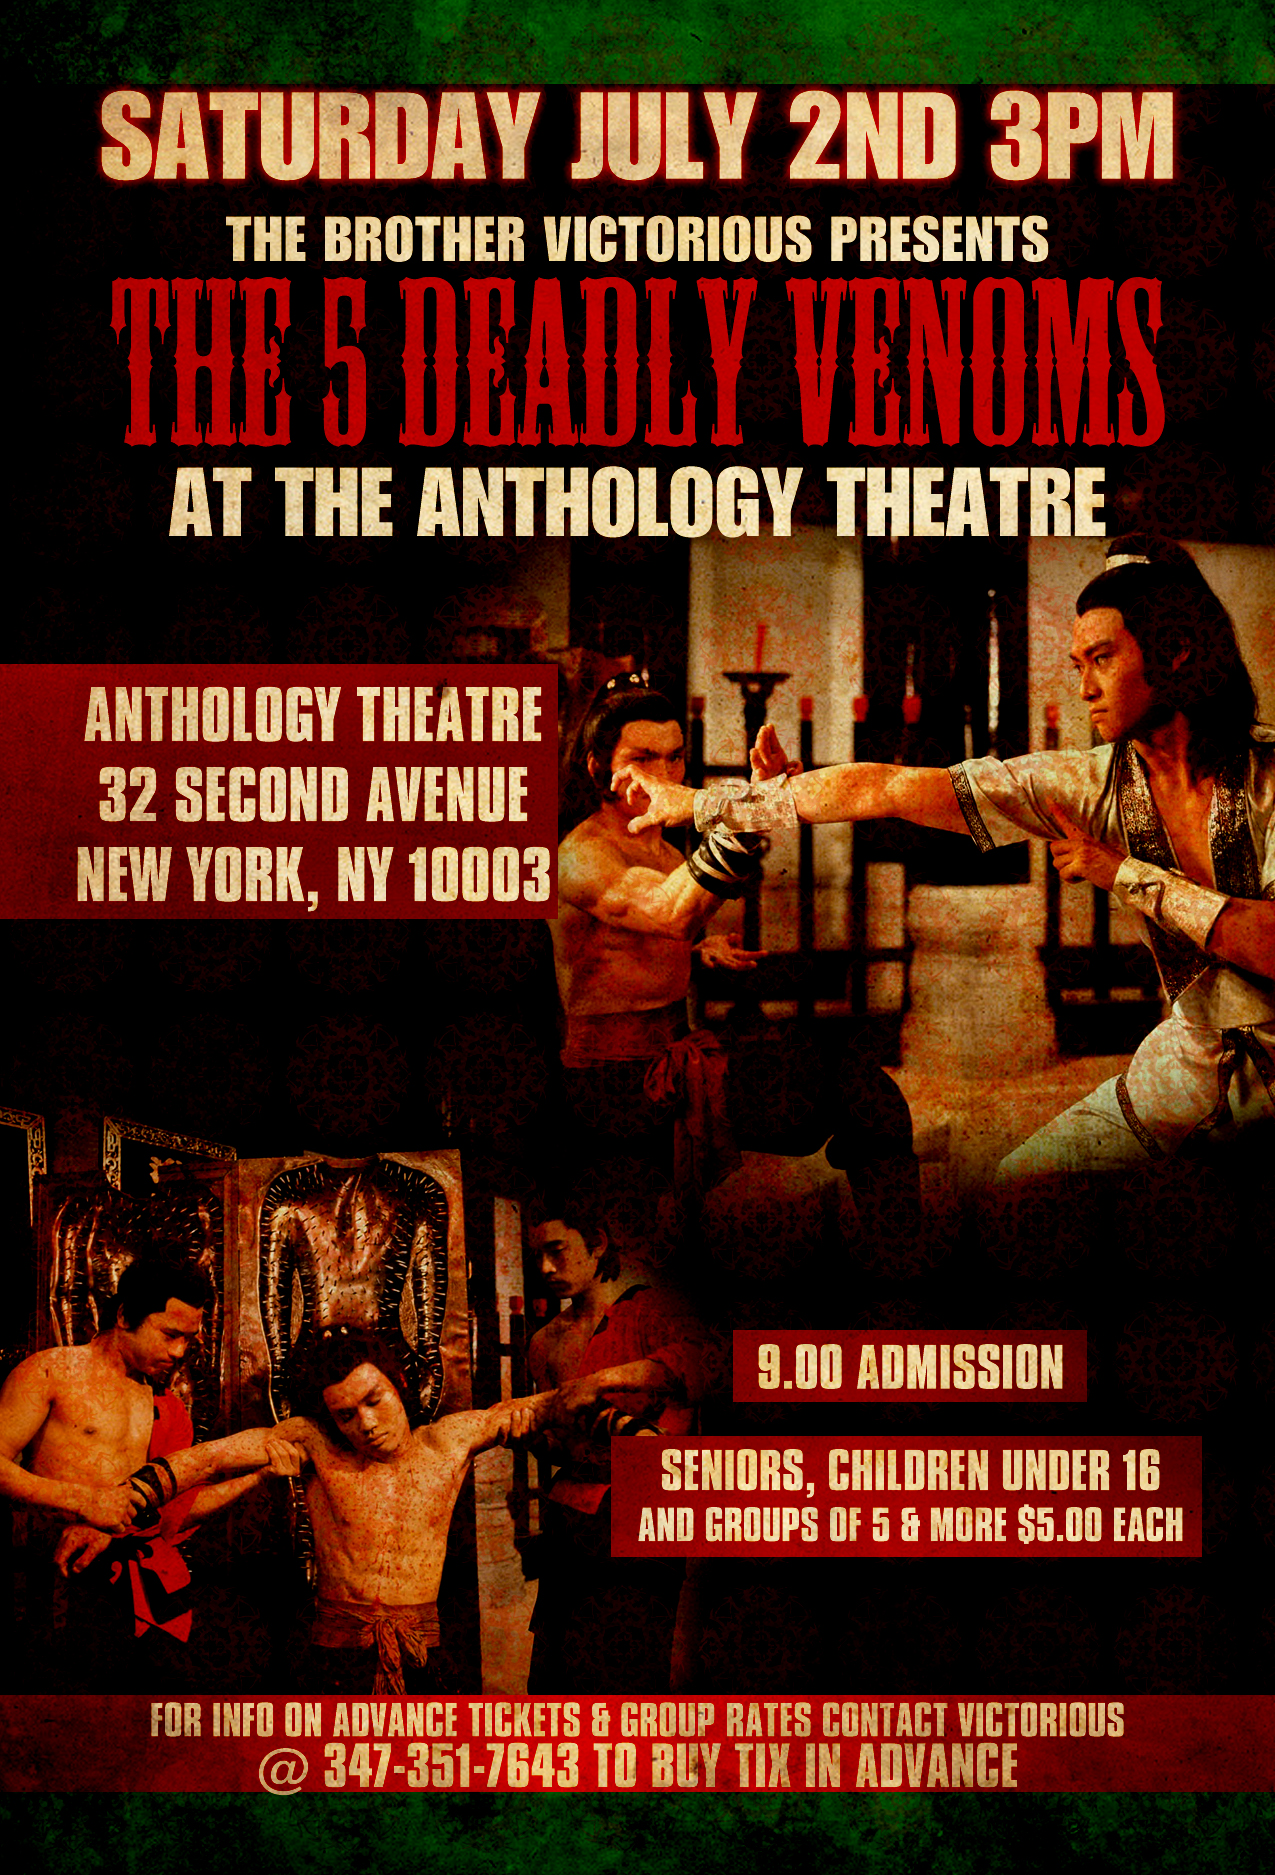 DJ Victorious presents The 5 Deadly Venoms (movie) in a NYC Theatre!